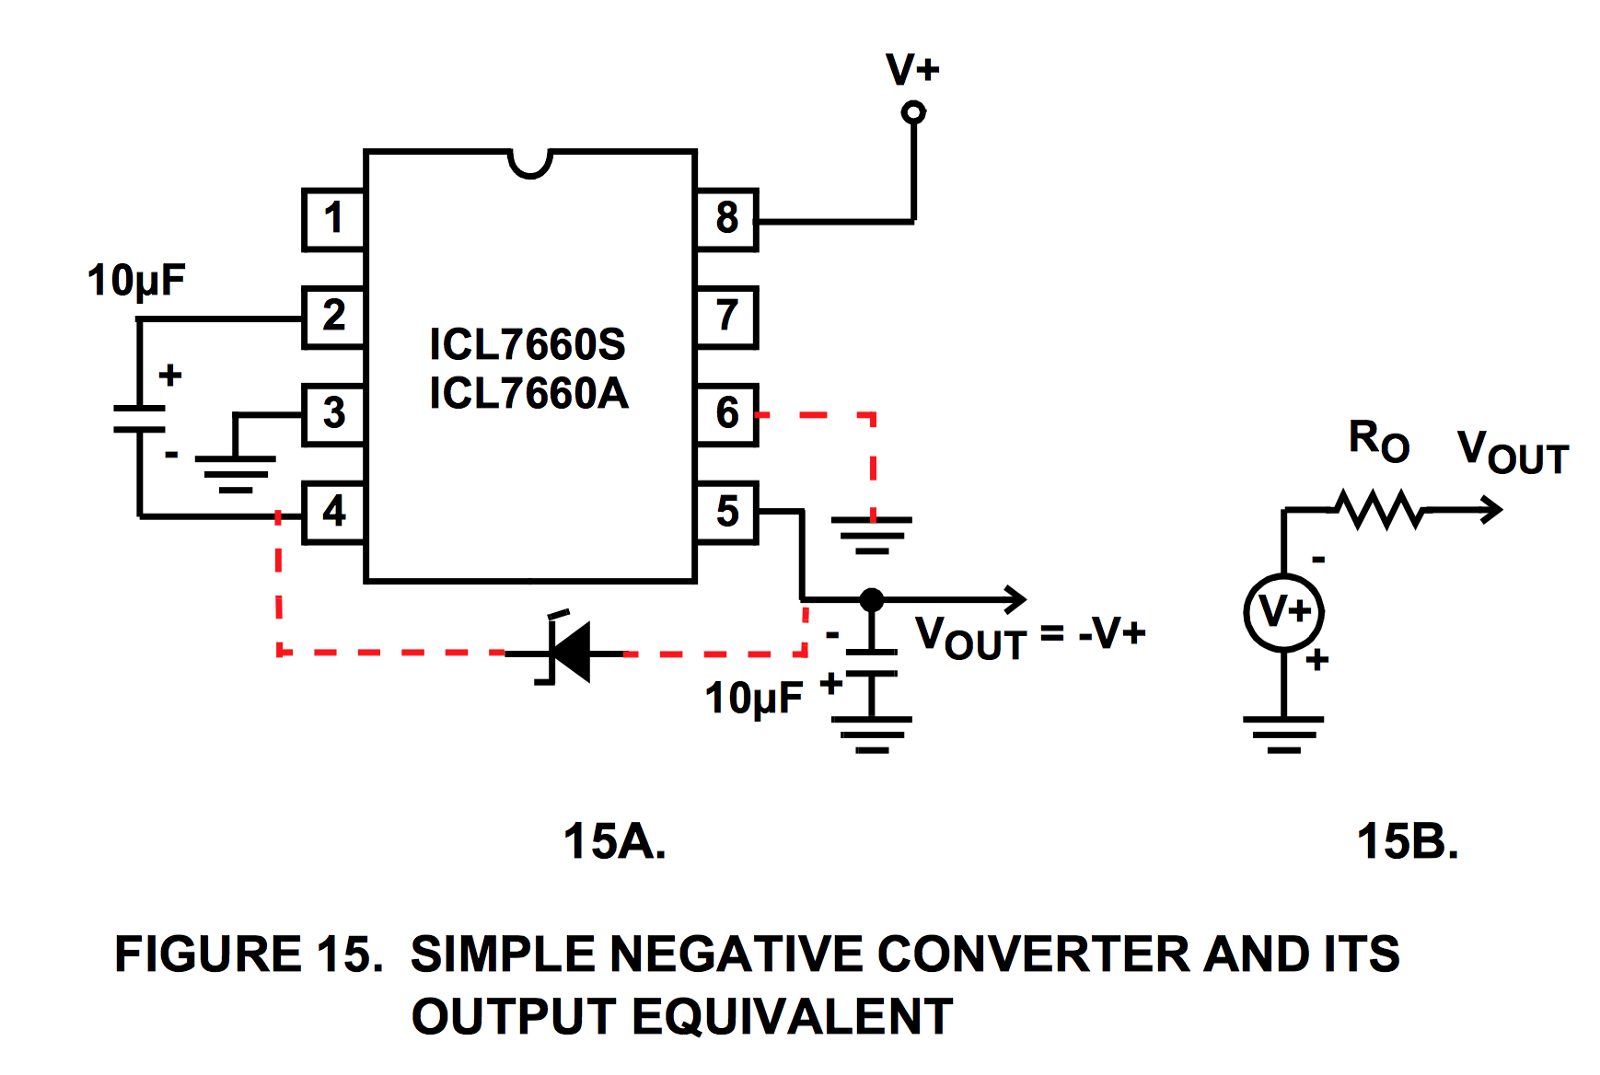 Voltage Regulators Revisted Lm317m 7812 Mcp170x Mic5219 And Icl7660 General Application Schematic For Mosfet With 10 F Electrolytic Capacitor Across Pins 2 3 Cap Another The Output On Pin 5 Ground